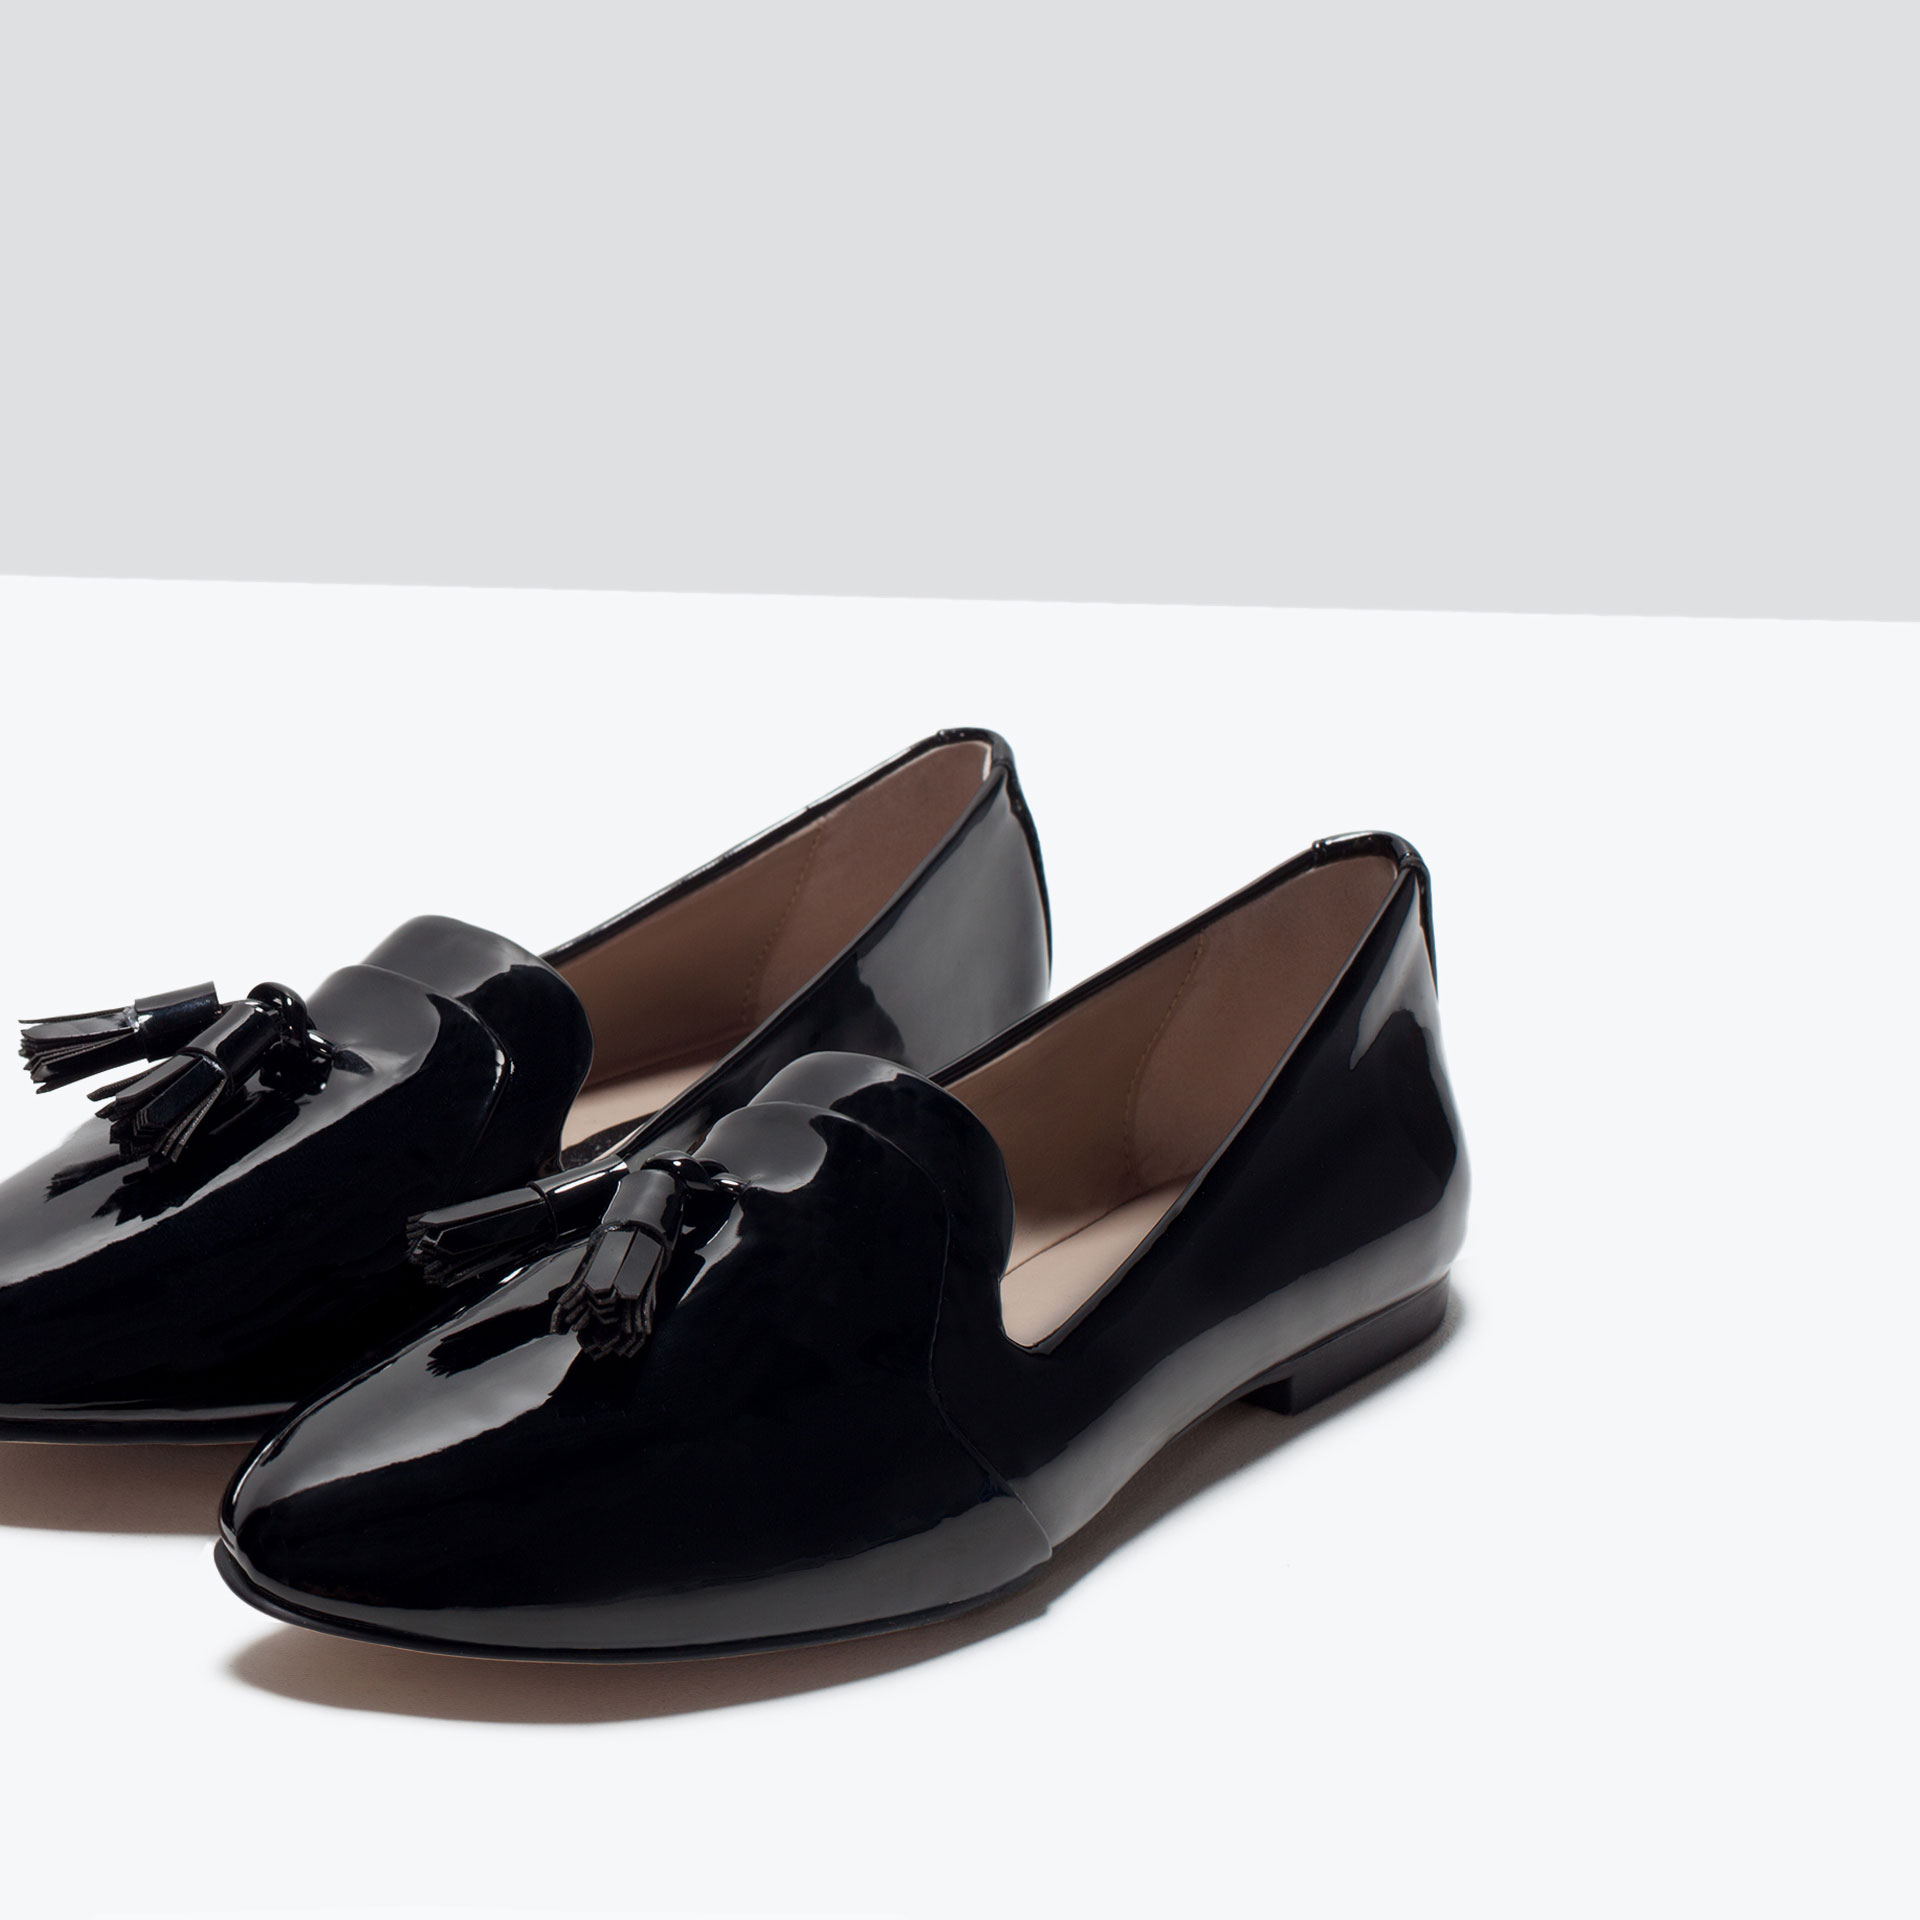 Zara Shoes Men